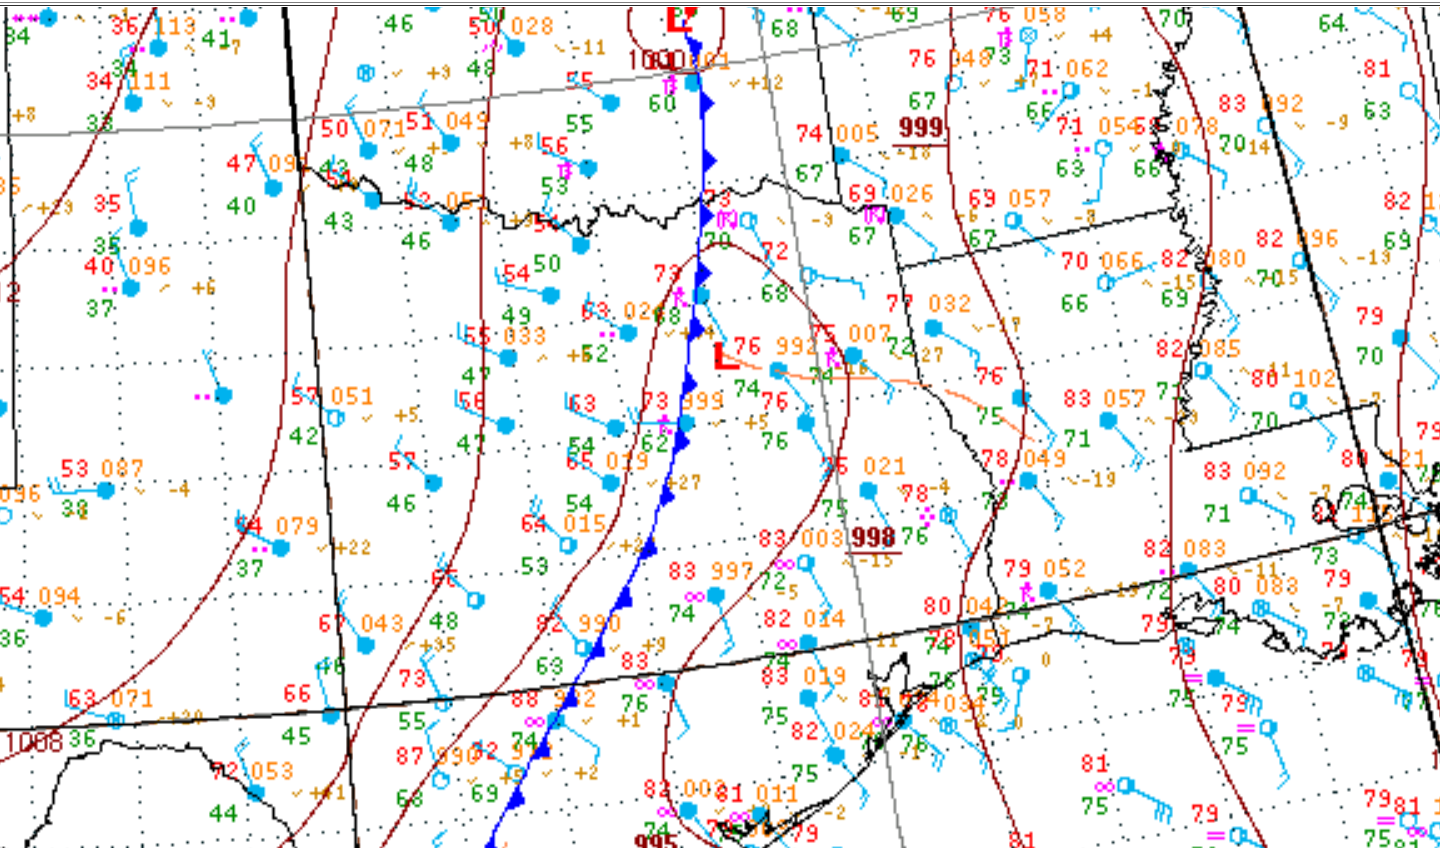 1900 CDT Regional Surface Analysis